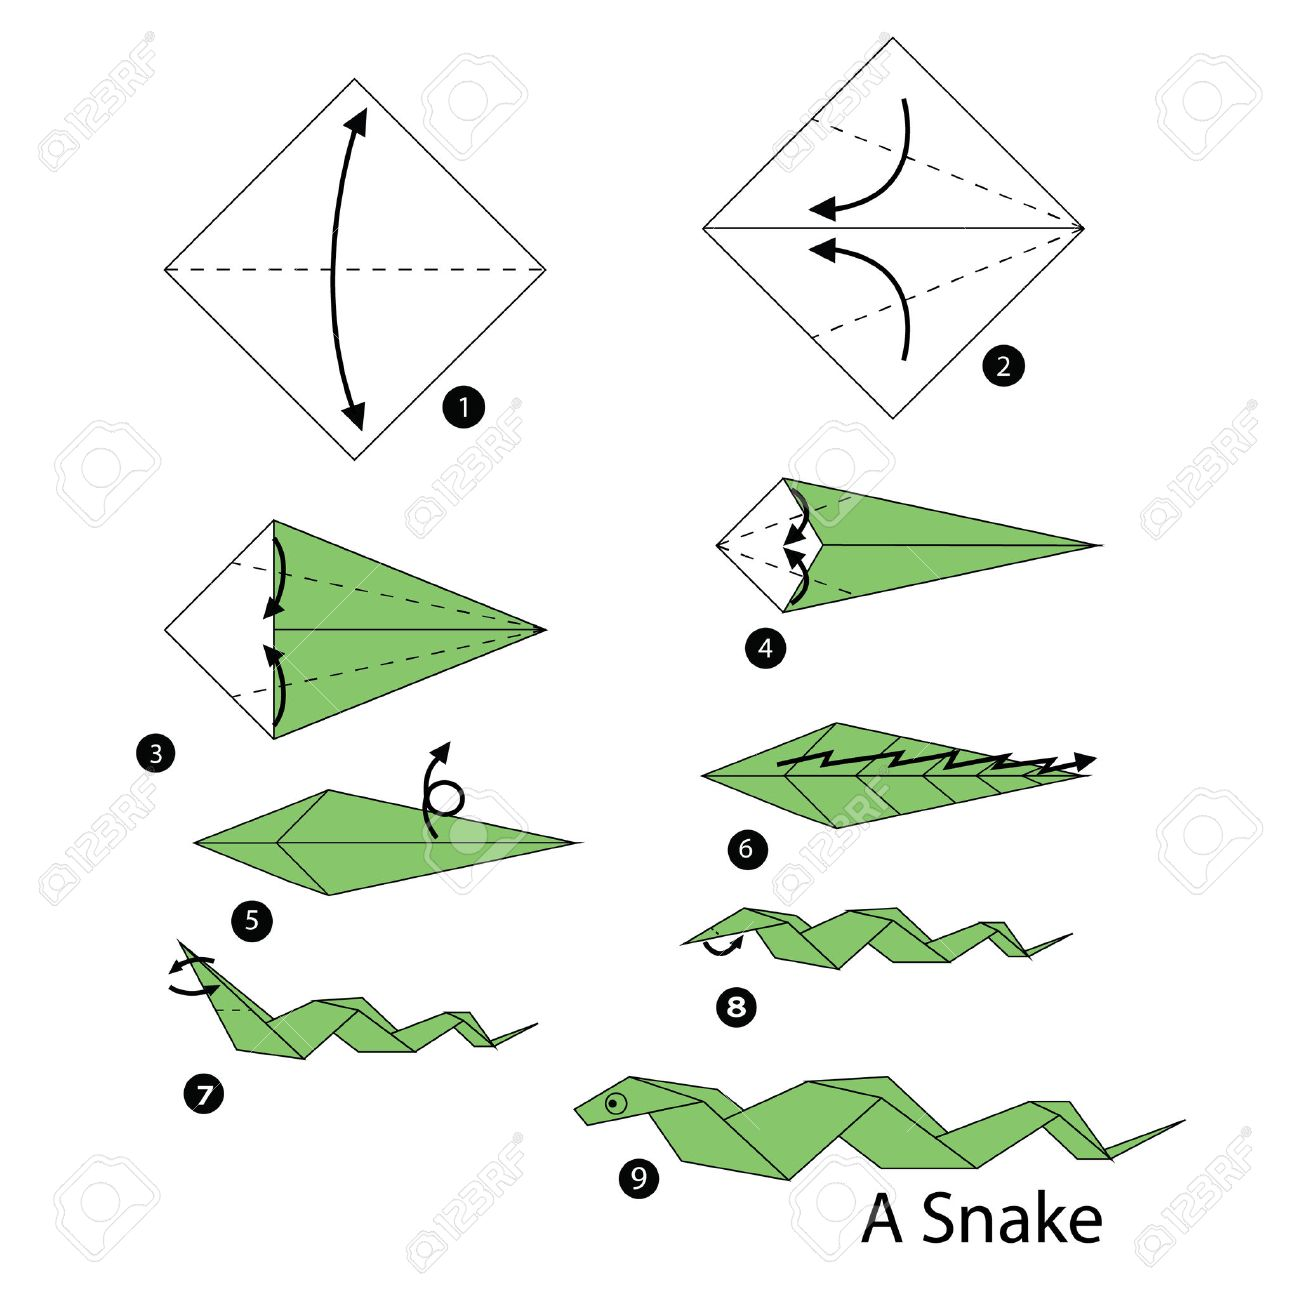 Step by step instructions how to make origami snake royalty free step by step instructions how to make origami snake stock vector 46230773 jeuxipadfo Gallery